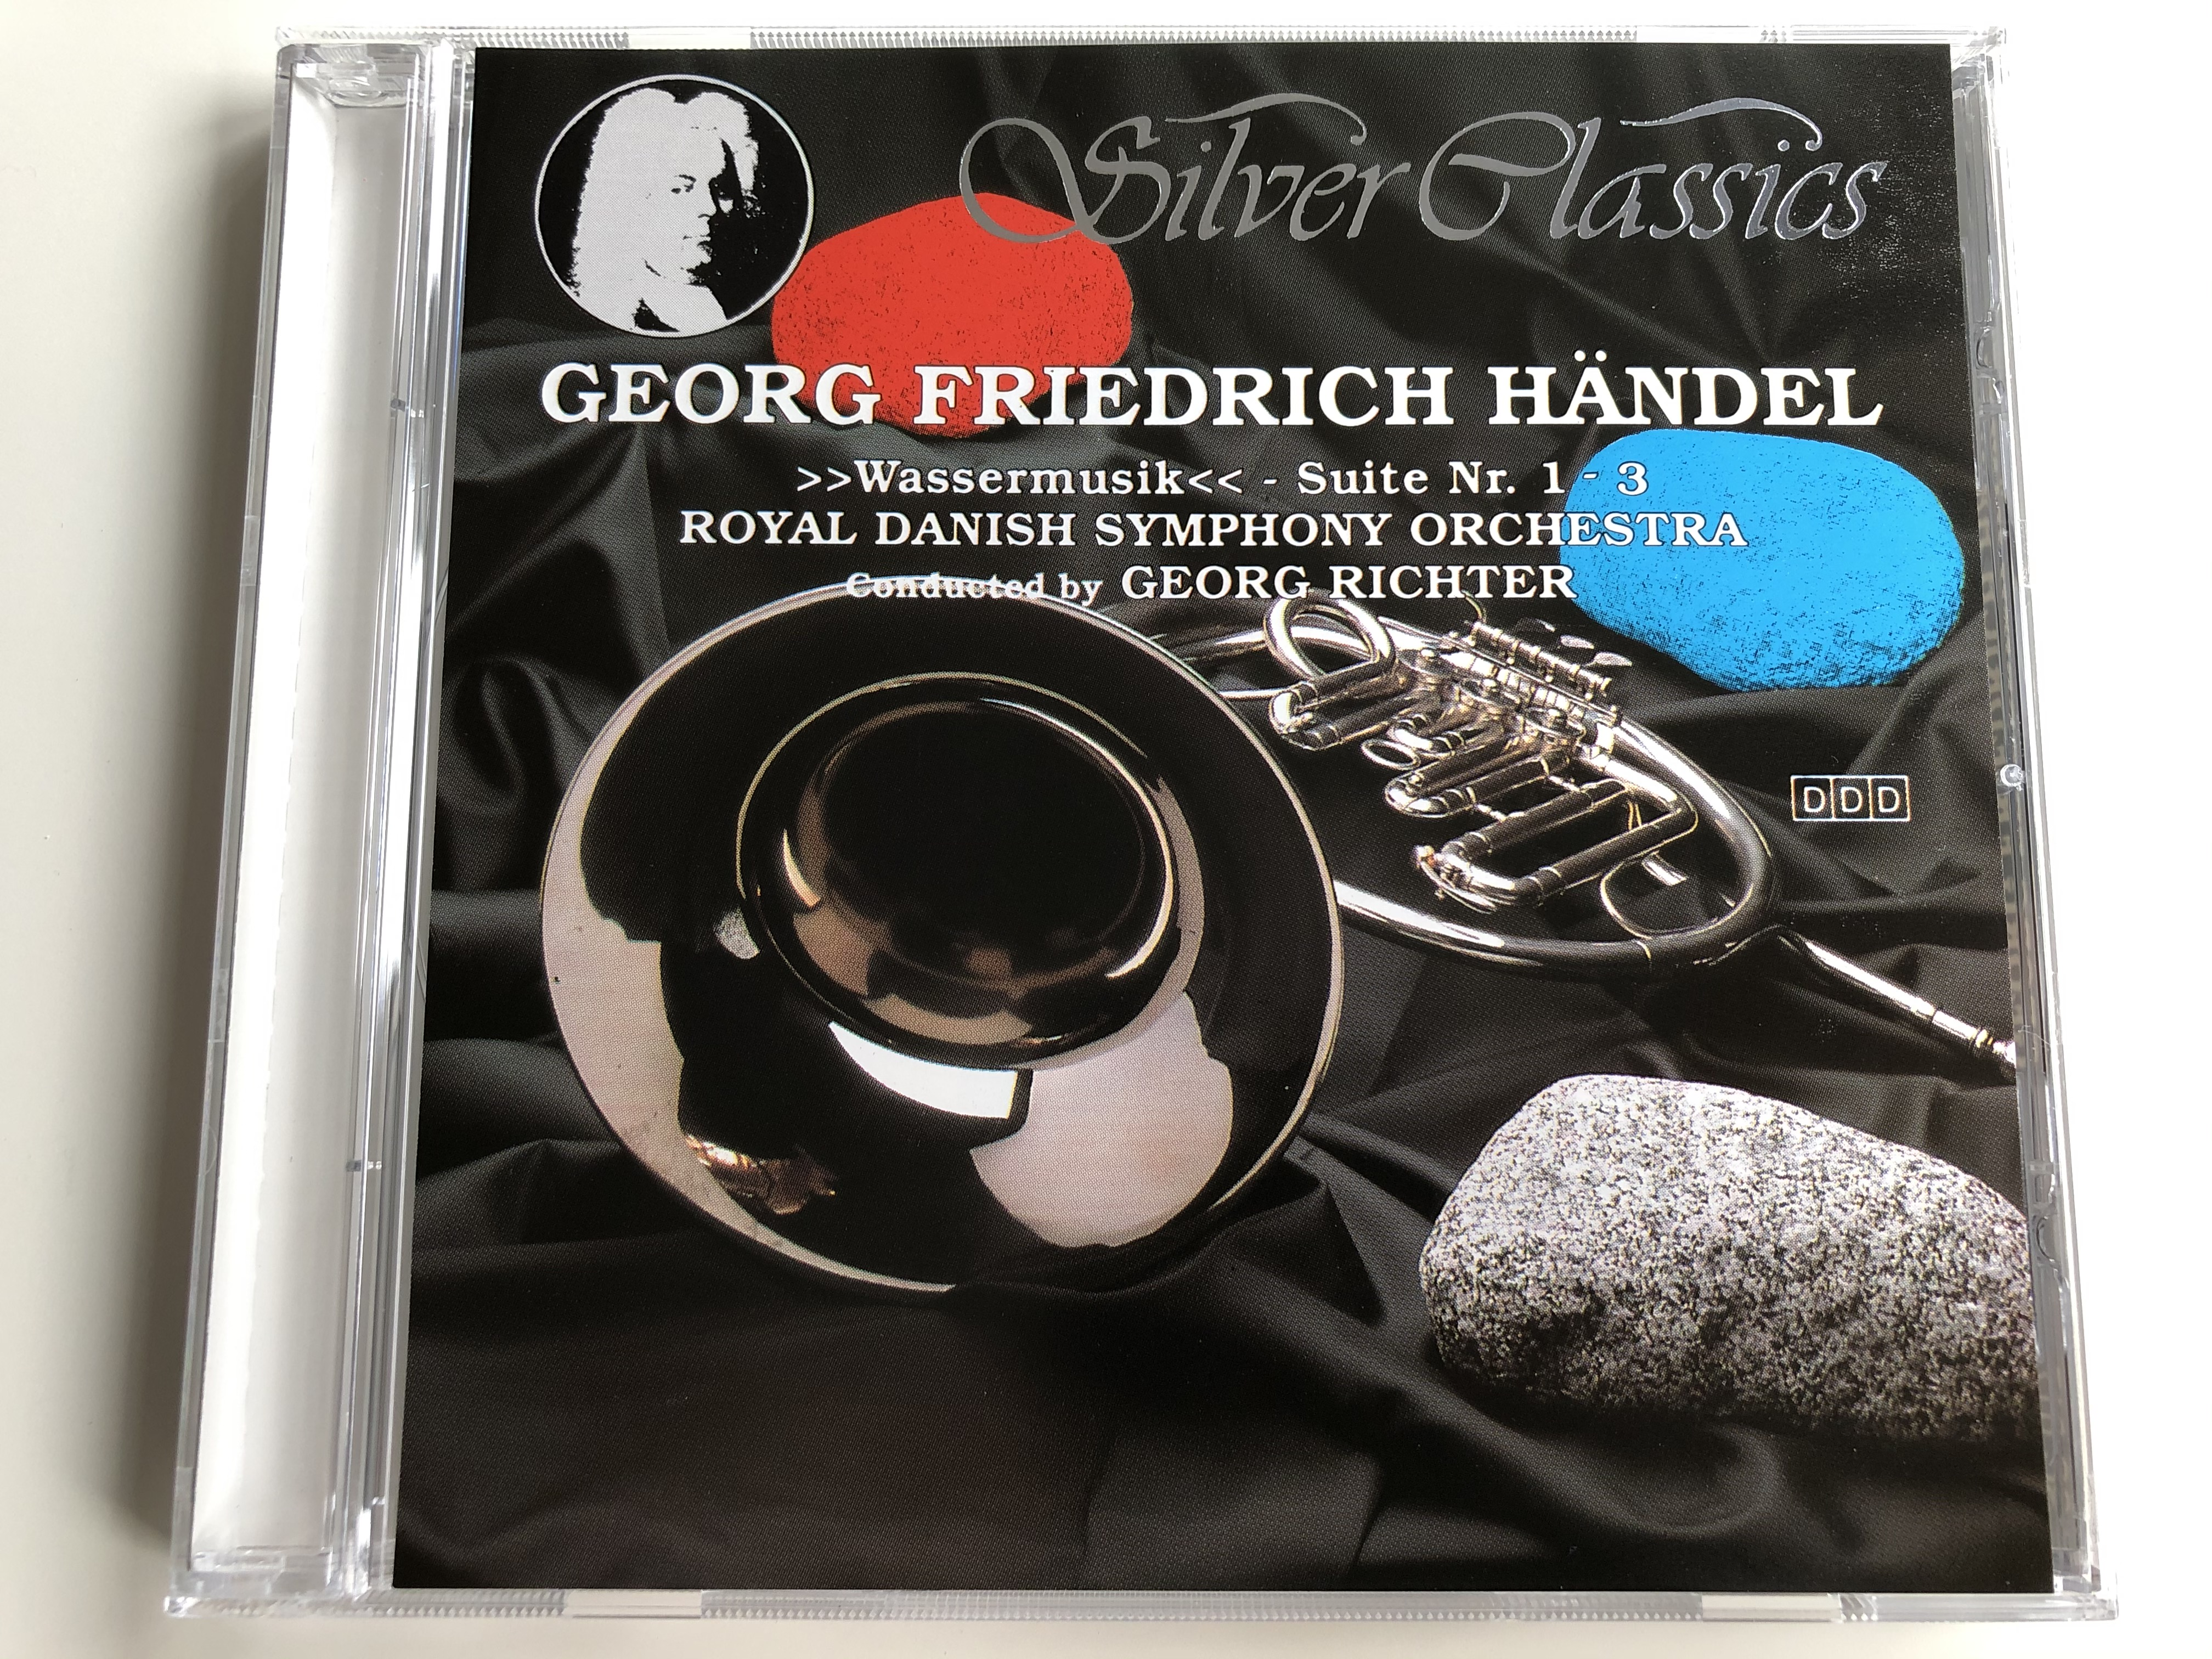 georg-friedrich-handel-wassermusik-suite-nr.-1-3-royal-danish-symphony-orchestra-conducted-by-georg-richter-silver-classics-audio-cd-1989-sc-017-1-.jpg